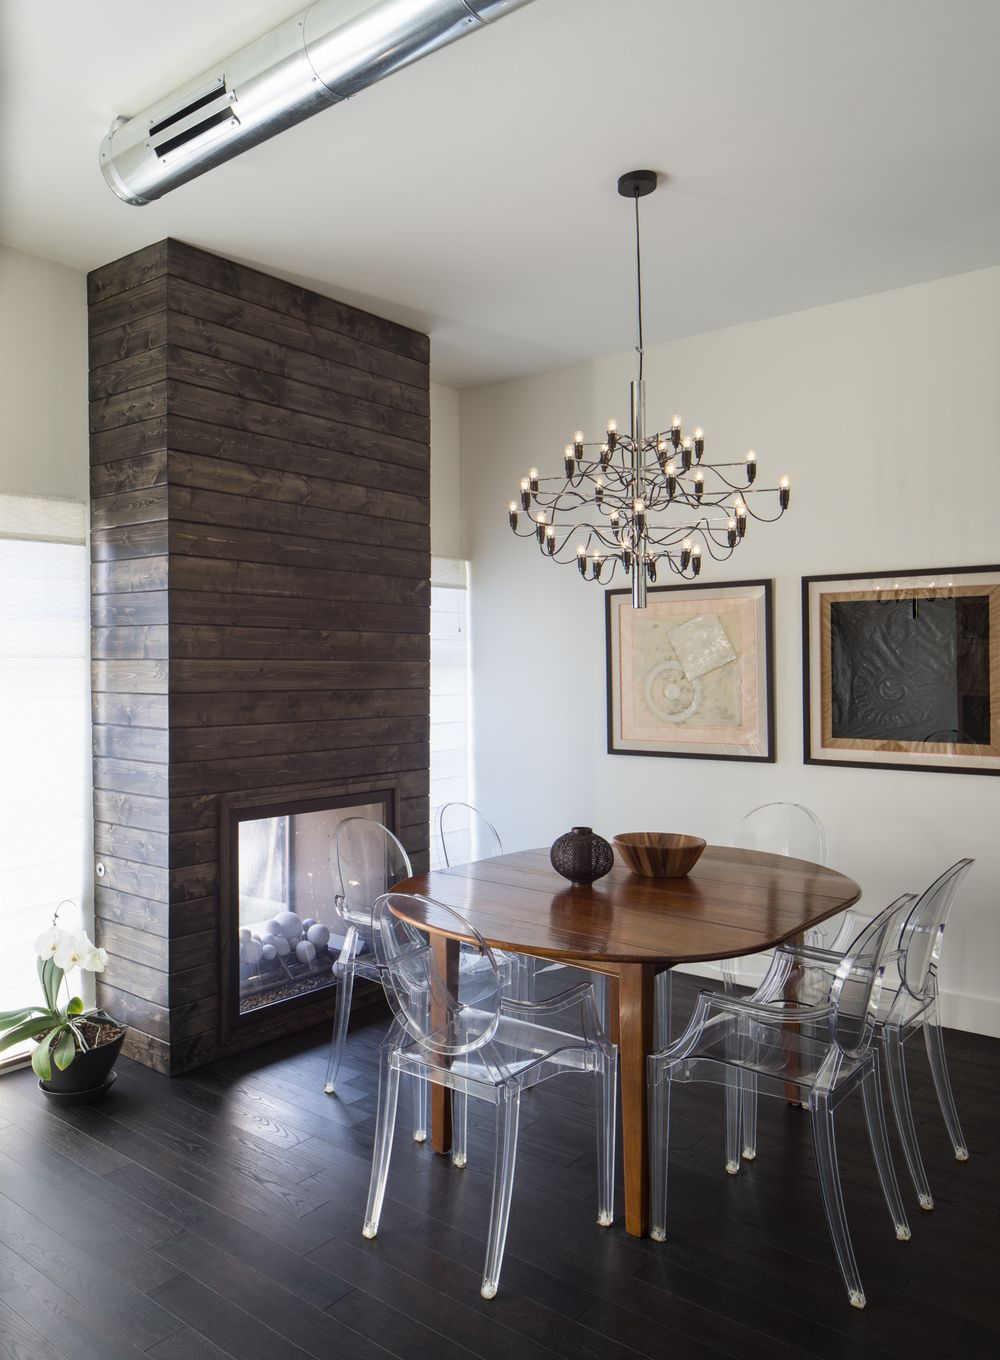 While wood is the major design element in this contemporary dining room, the Ghost chairs fit in, allowing the wood of the wall, fireplace and table to shine.